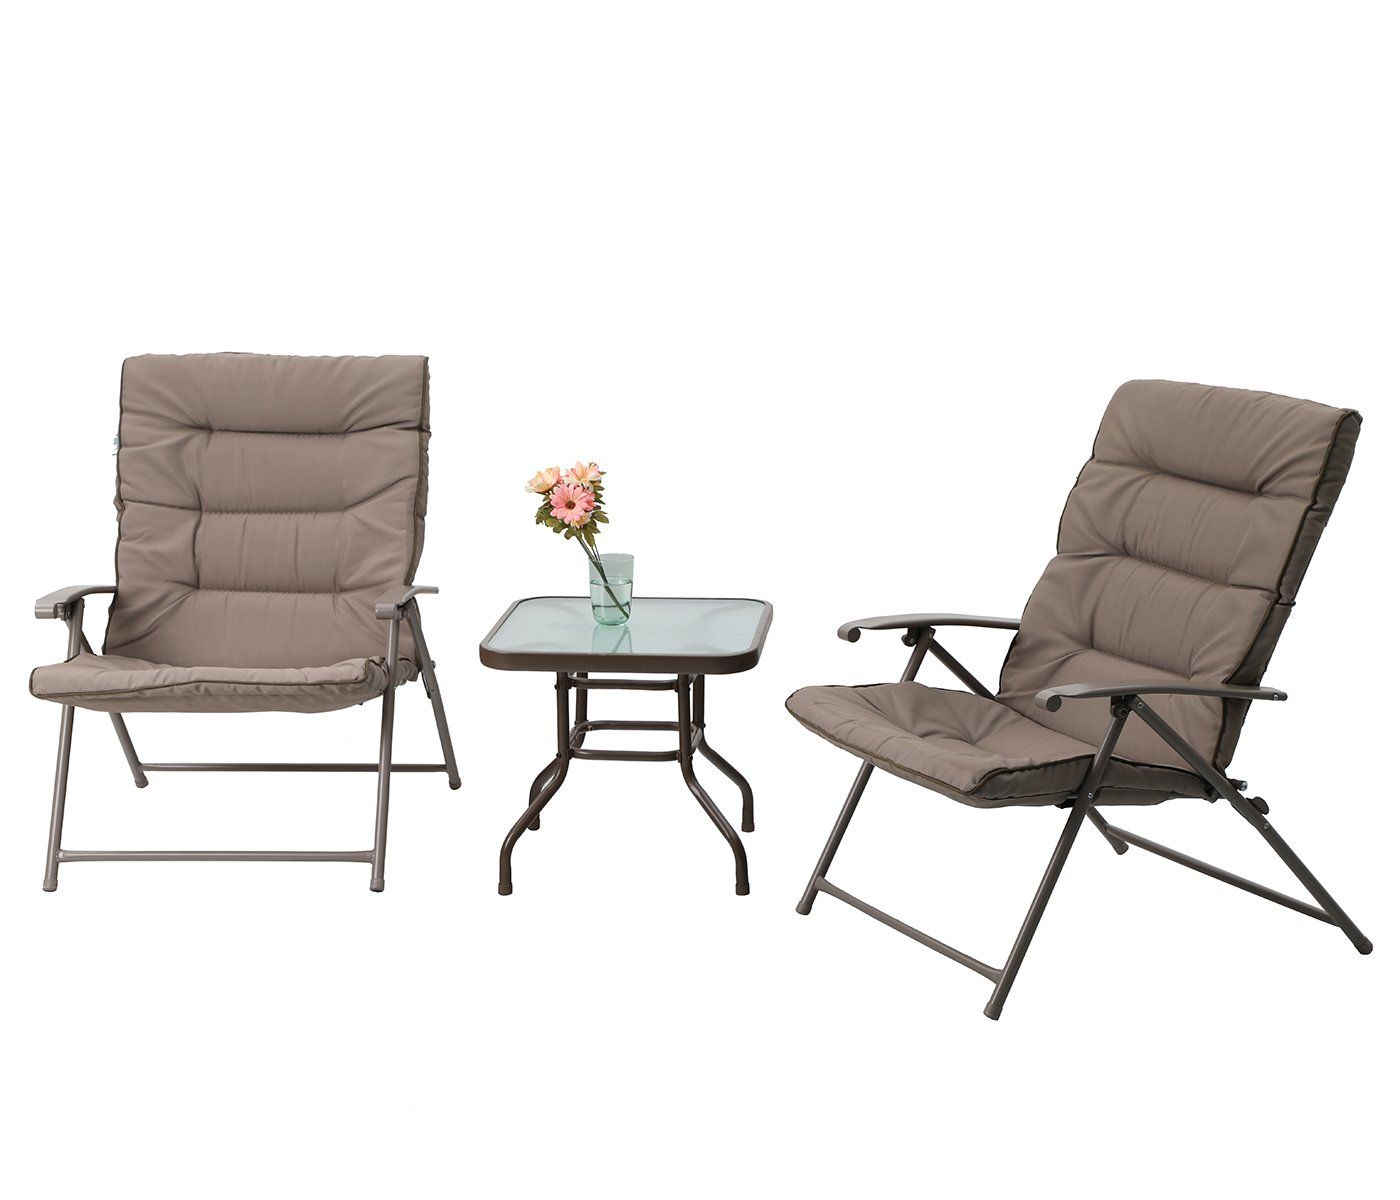 Cool Phi Villa Patio 3 Pc Padded Folding Chair Set Adjustable Ncnpc Chair Design For Home Ncnpcorg